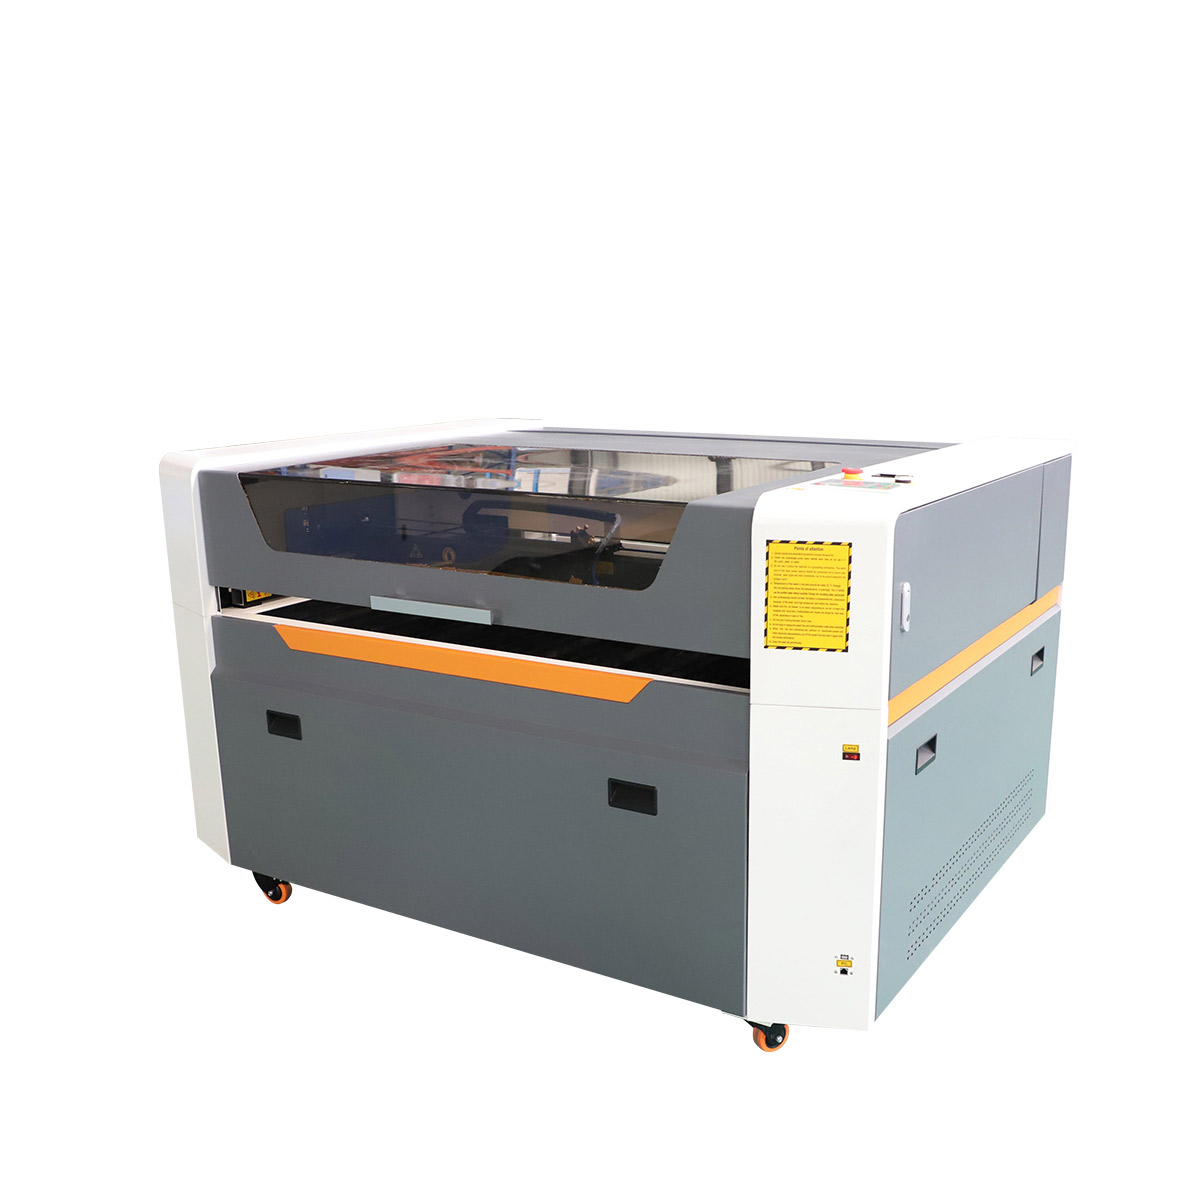 Laser cutting machine precautions